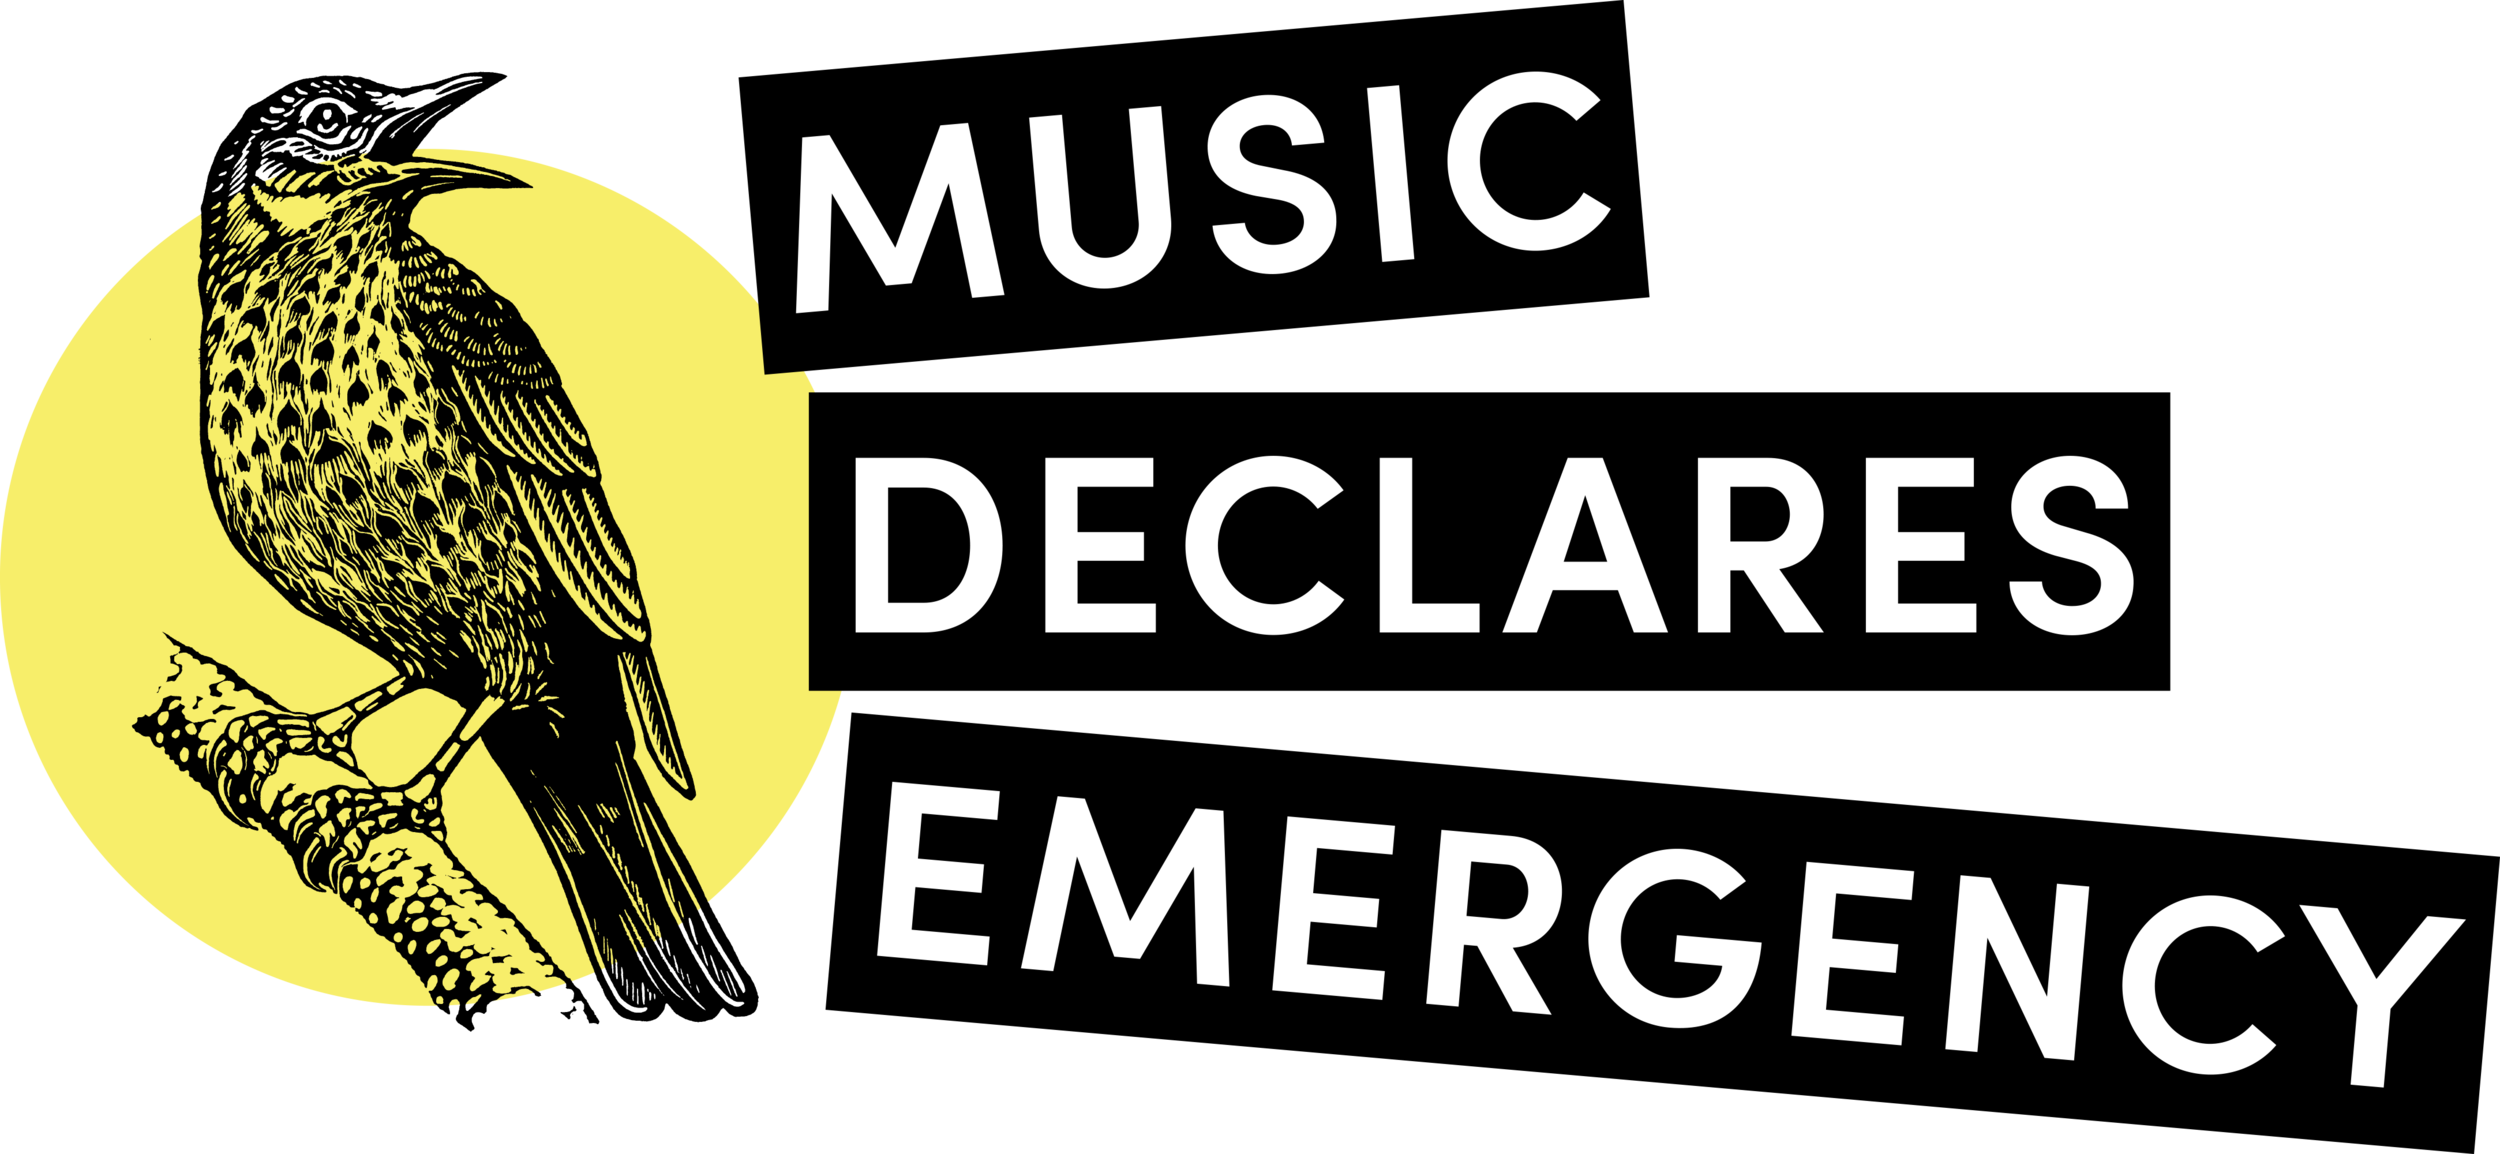 music declares emergency logo